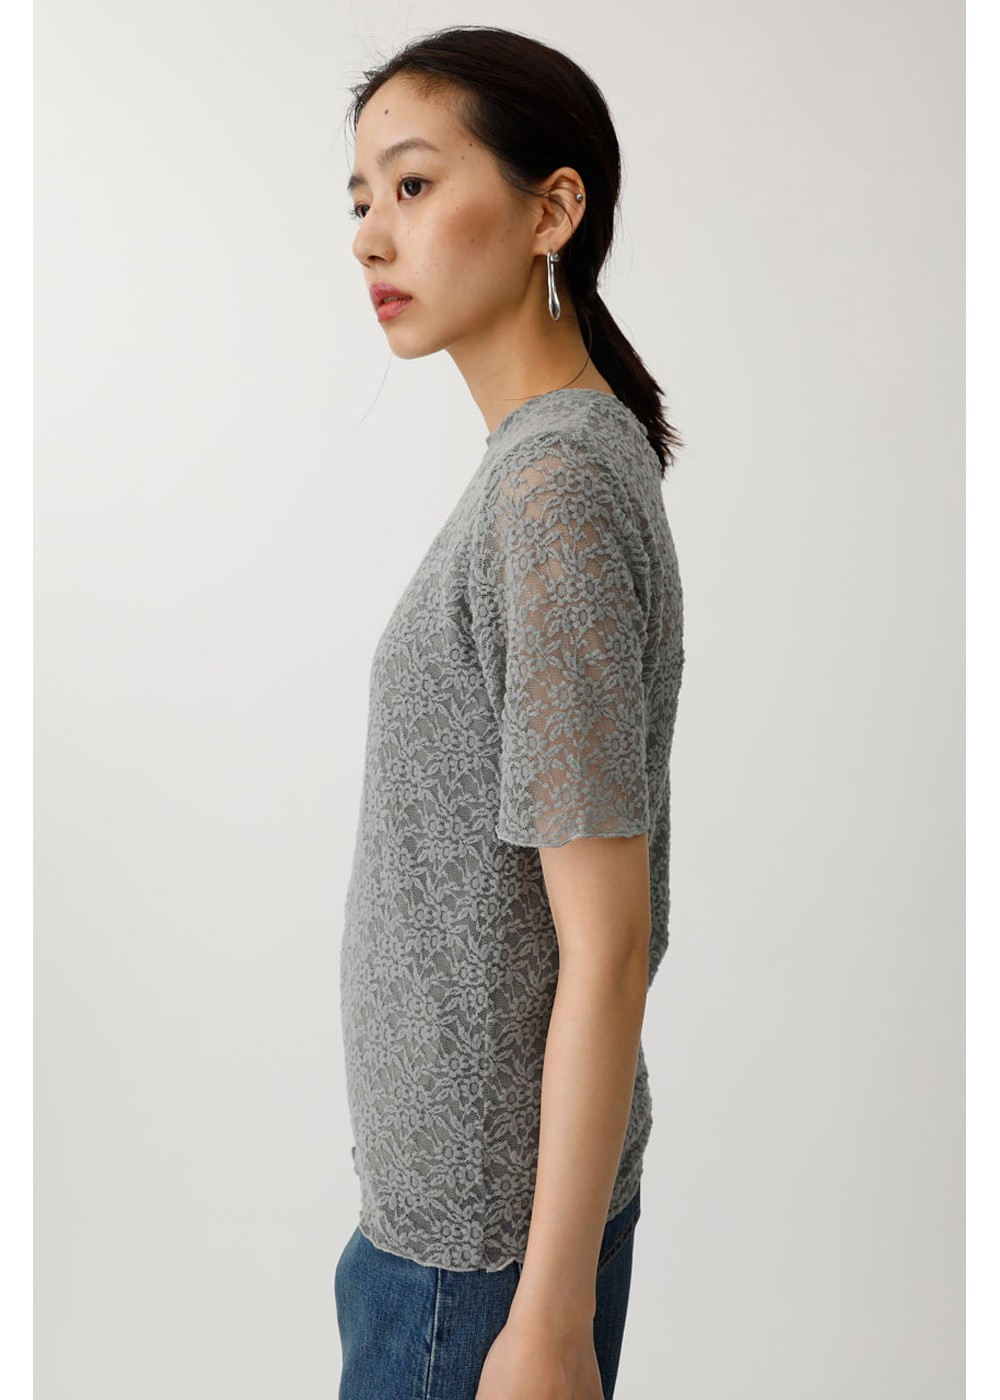 【最大70%OFF】STRETCH LACE H/N TEE|L/GRY|その他トップス|MOUSSY